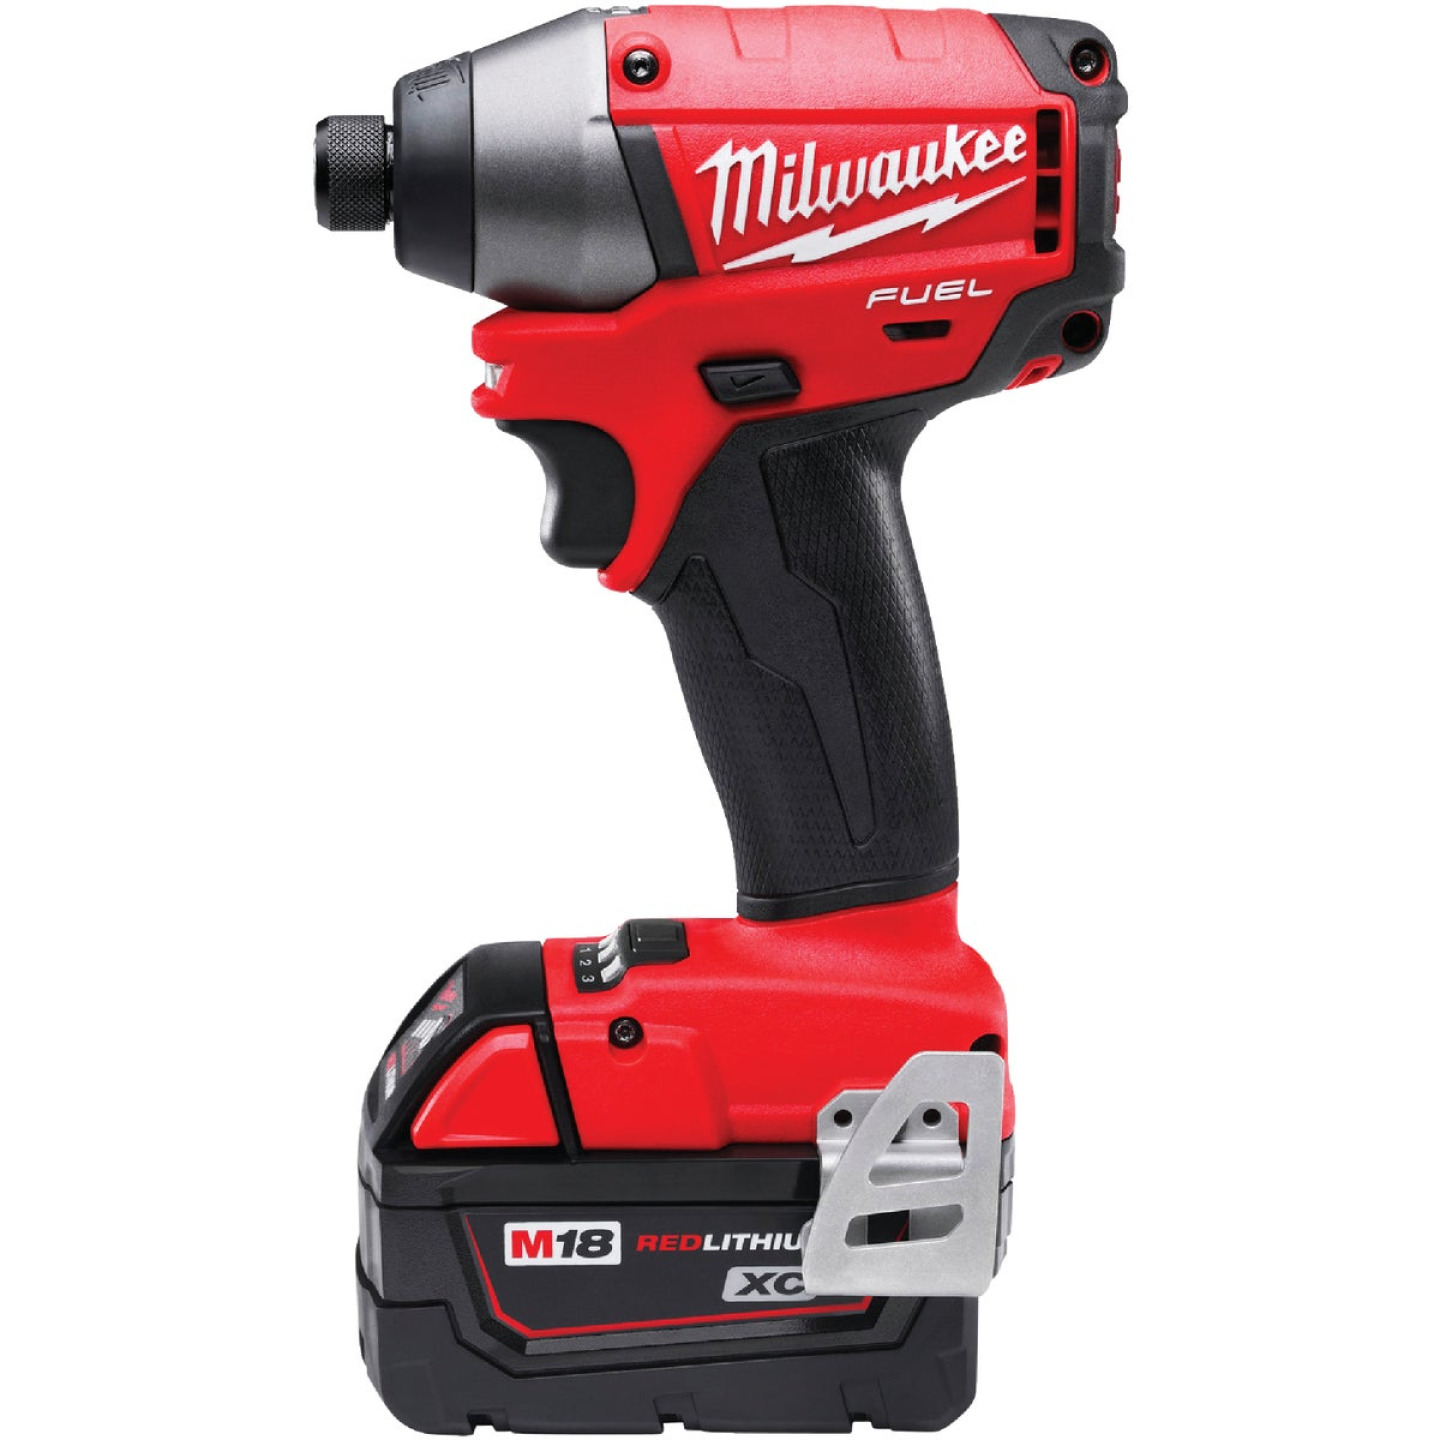 Milwaukee M18 FUEL 18 Volt XC Lithium-Ion Brushless 1/4 In. Hex Cordless Impact Driver Kit (with 2 Batteries) Image 5